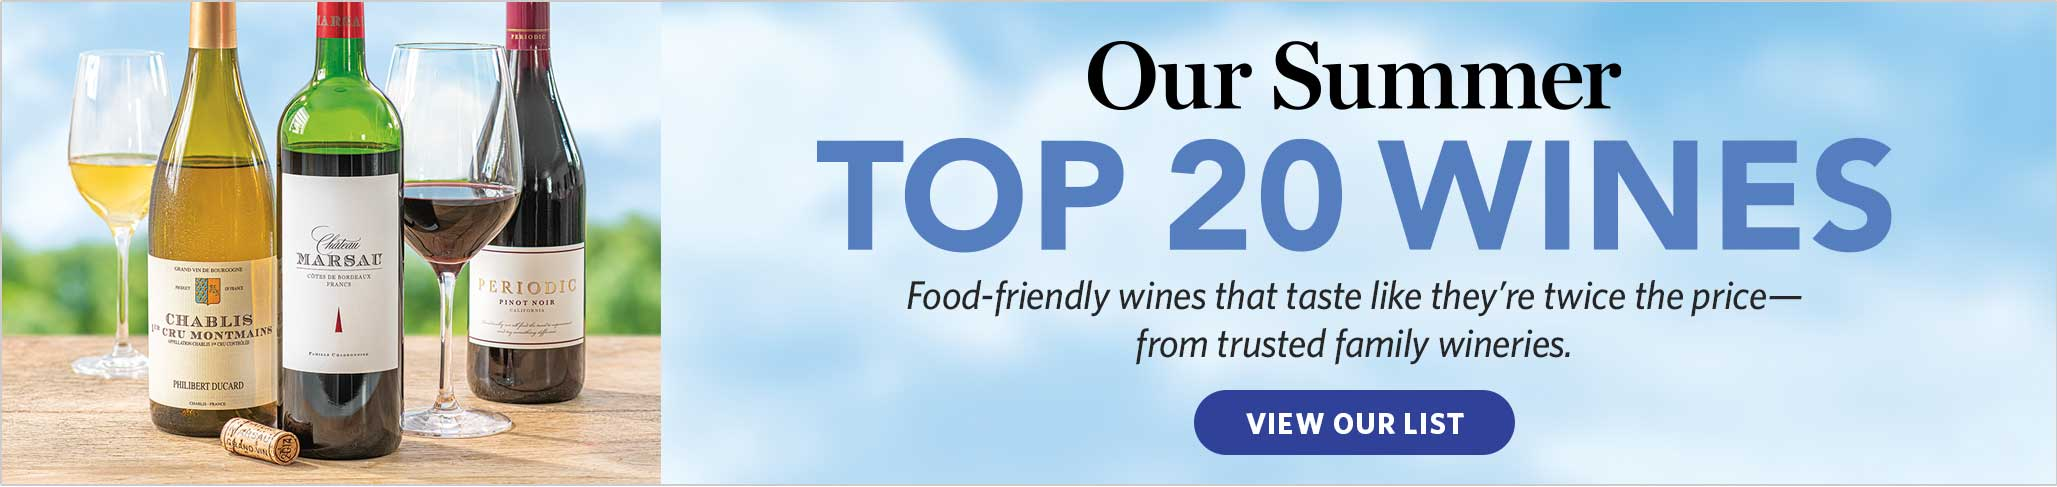 Our Summer Top 20 Wines: View Our List